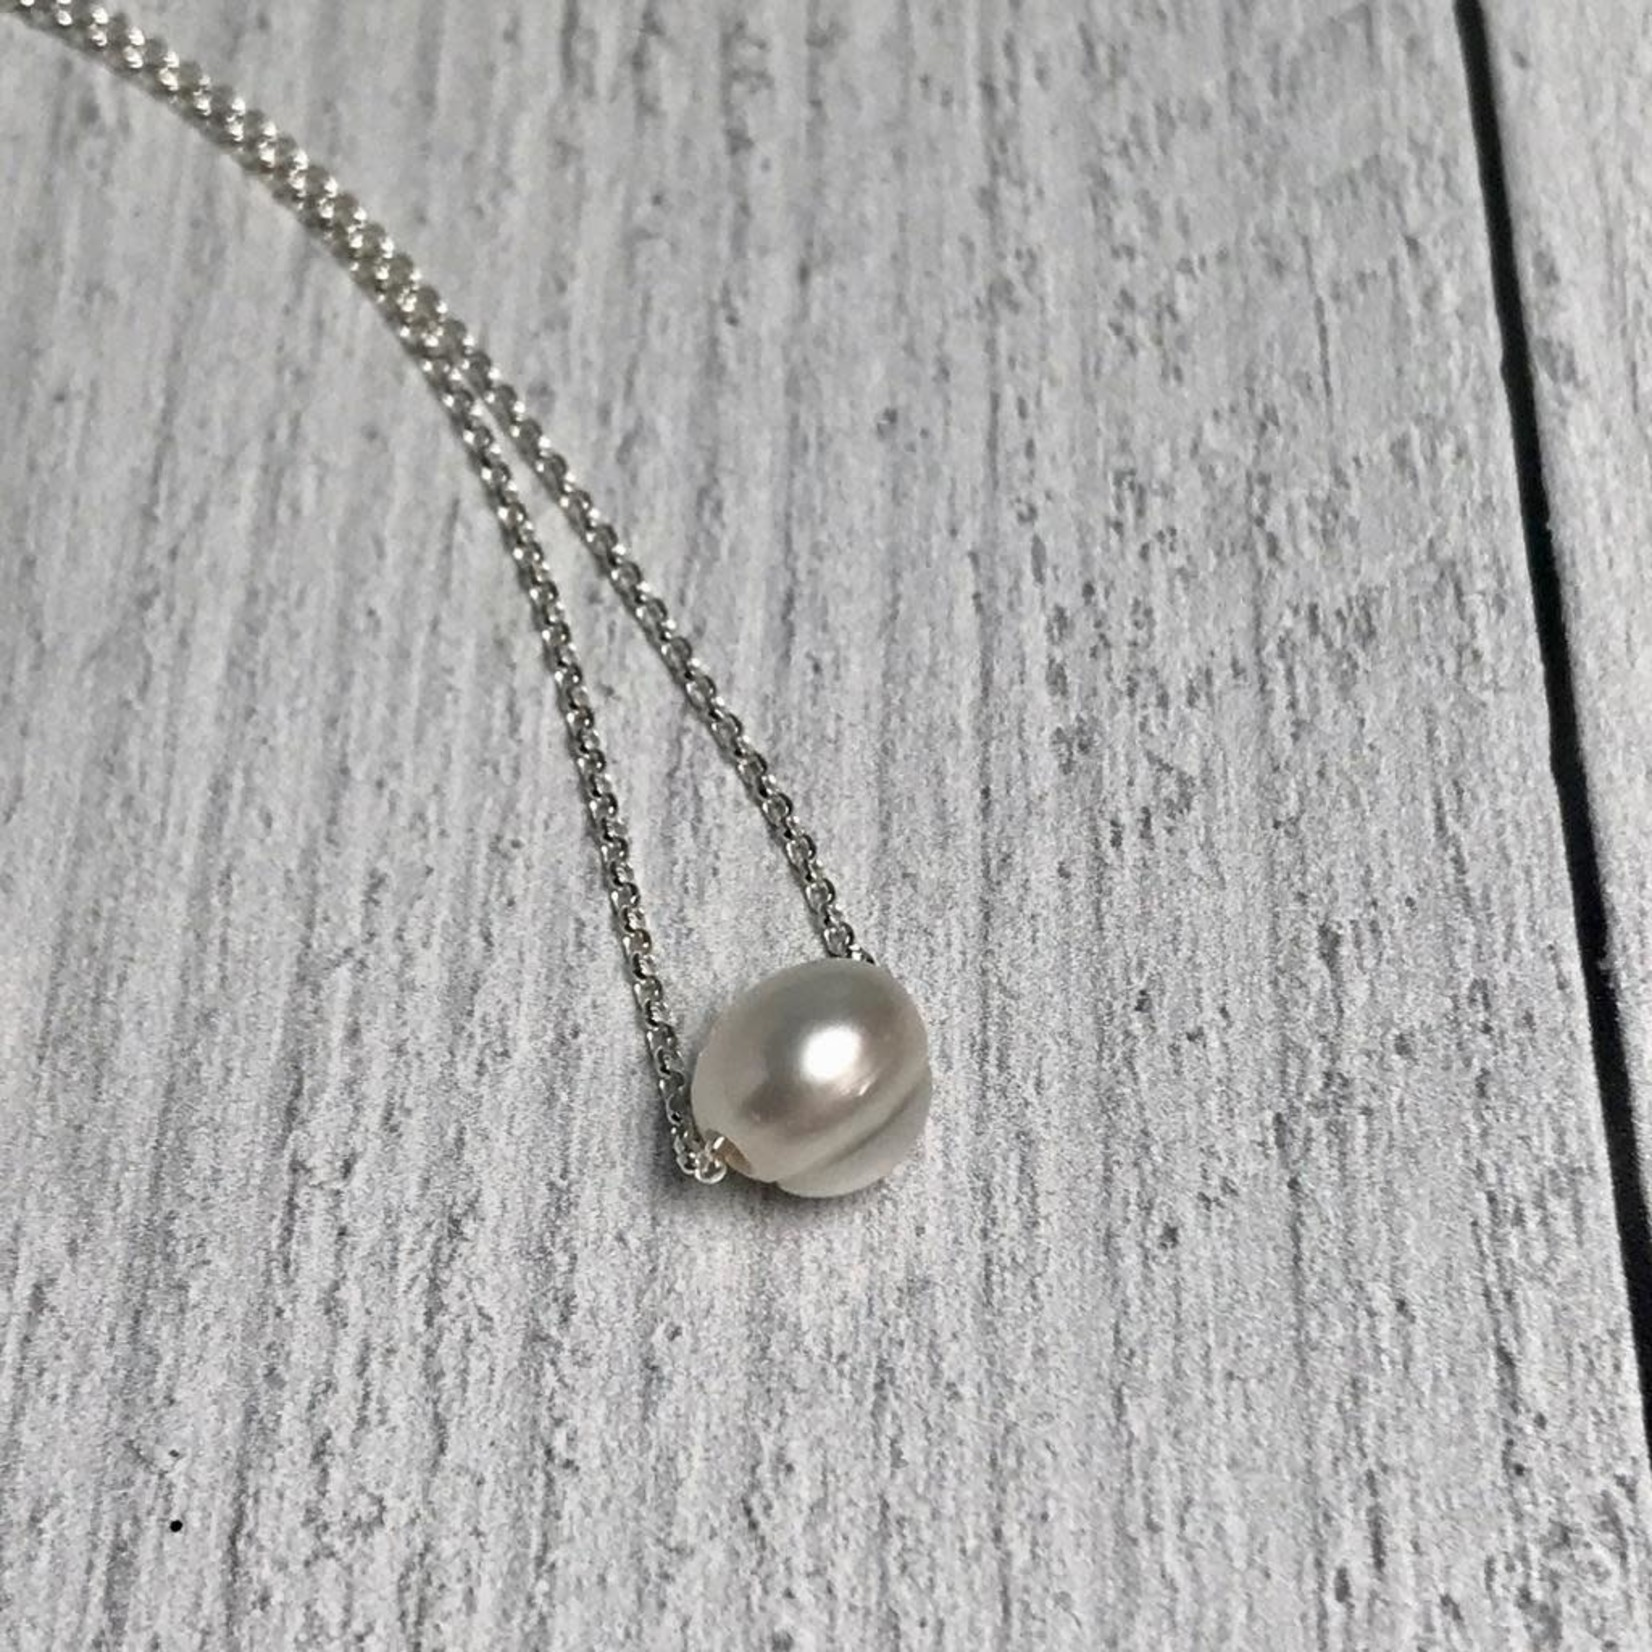 Handmade Sterling Silver Necklace with white pearl, shiny